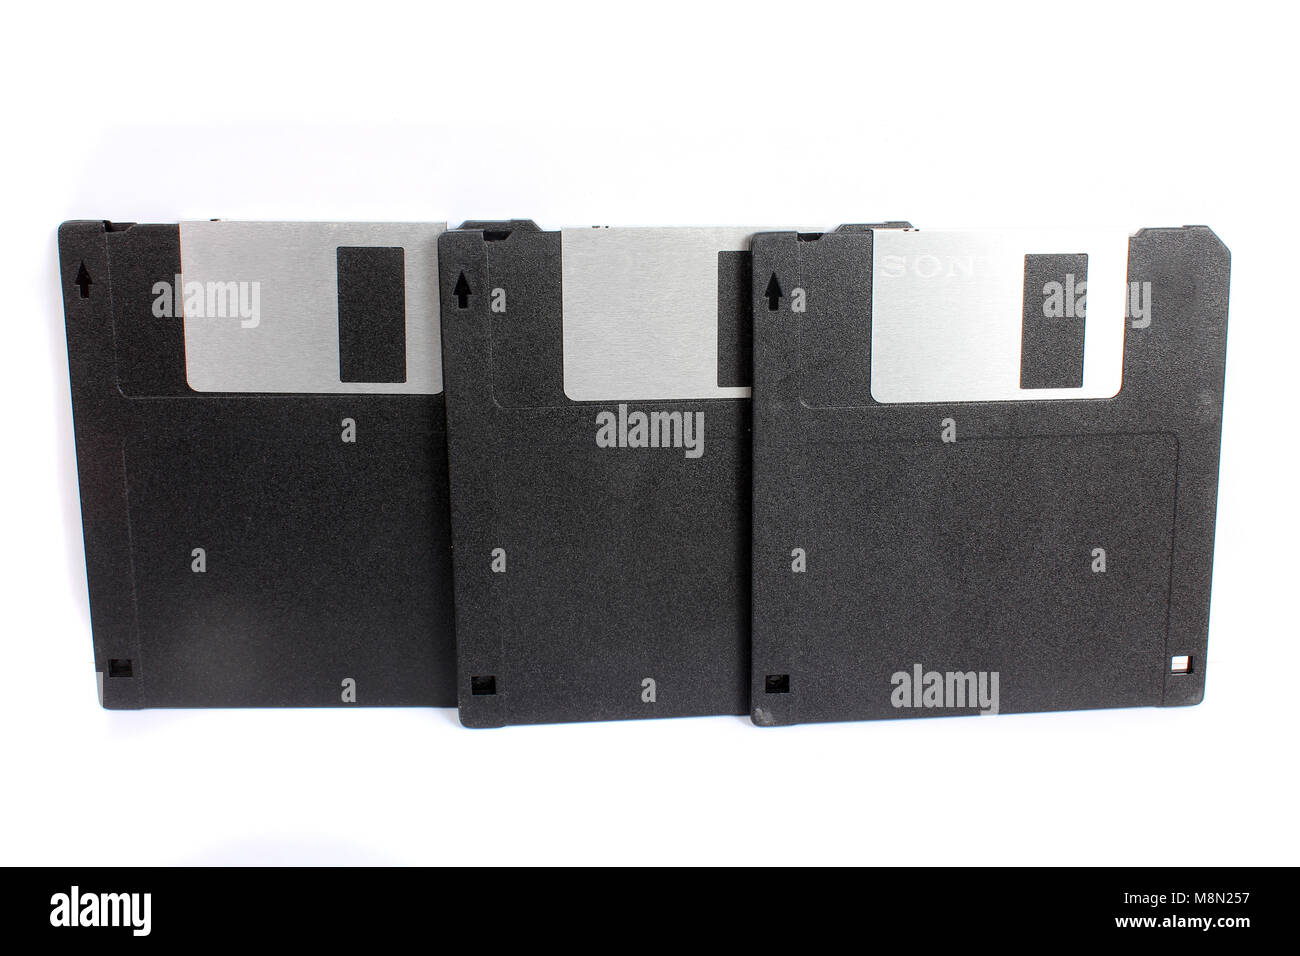 A set of 1.44 MB floppies used for storing data in computers in the 90s. - Stock Image